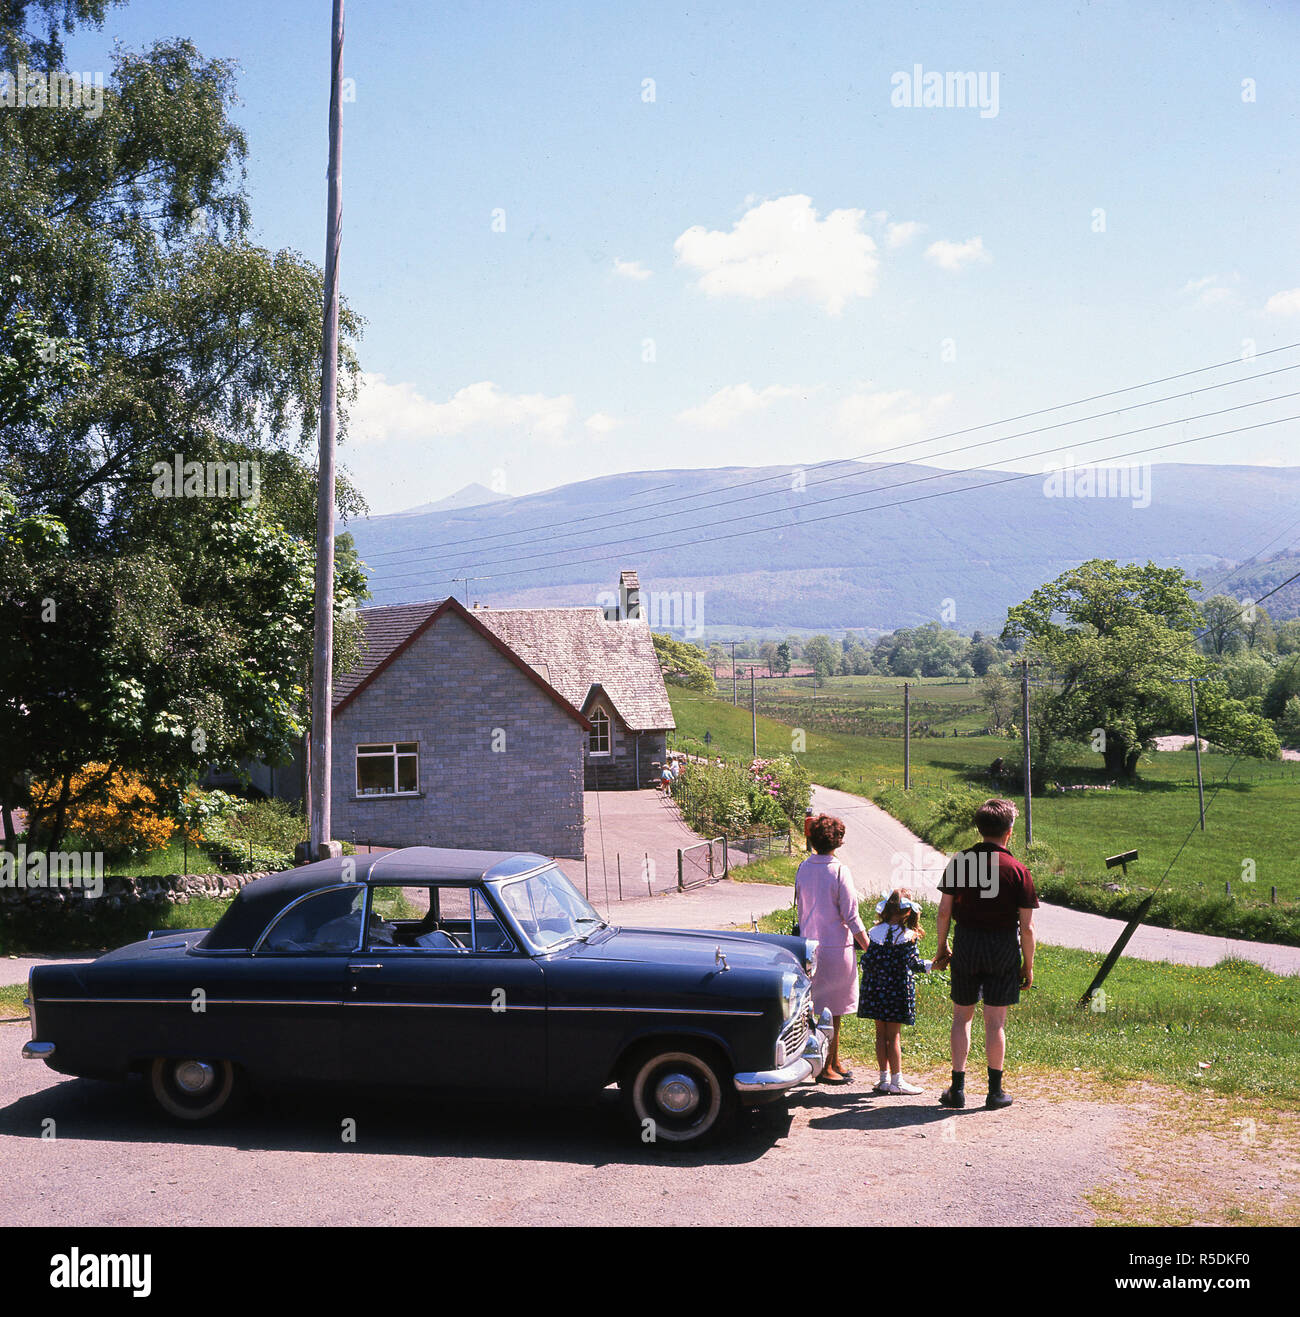 1960s, Balquhidder, Stirling, Scotland, a couple and their small child stand by their car looking at the mountain terrain of the Braes of Balquhidder that overlooks the village. The famous Scottish outlaw and folk hero, Rob Roy lived and died in Balquhidder. Stock Photo